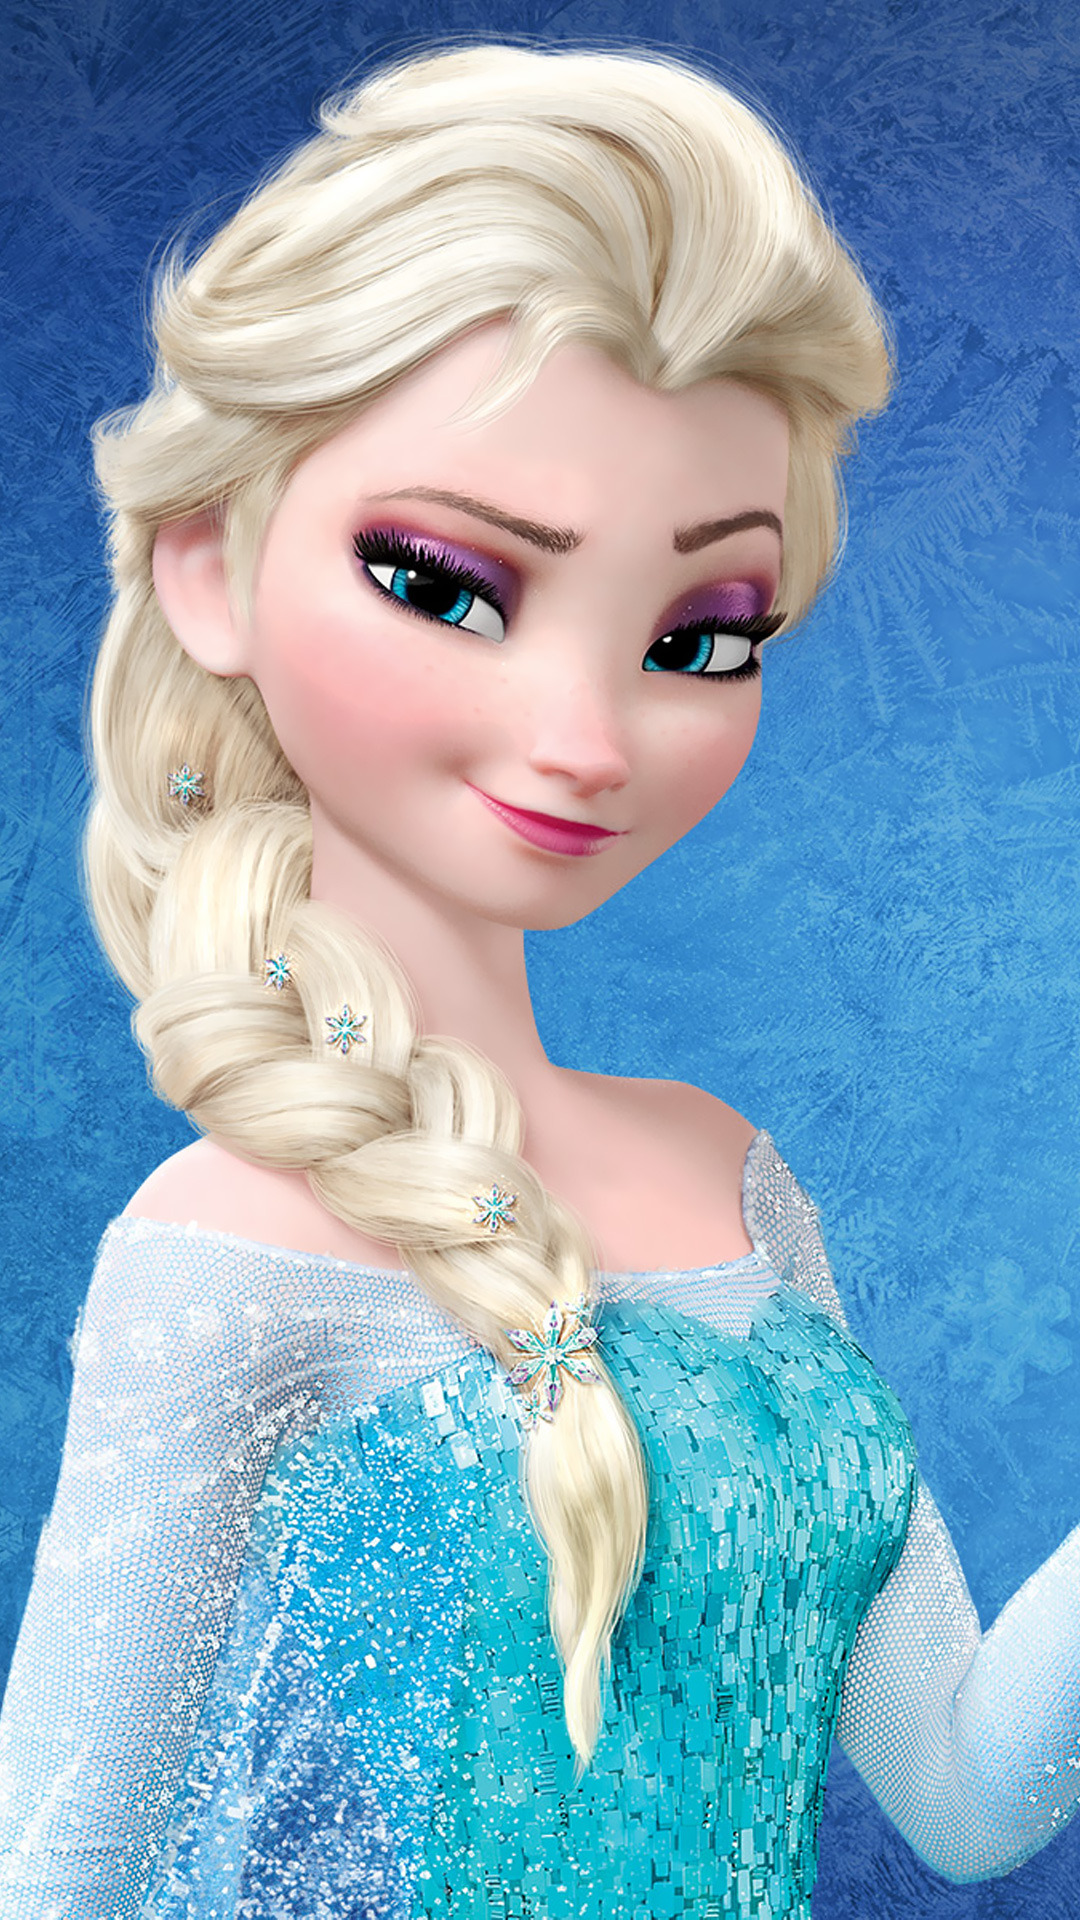 Frozen Elsa   Best htc one wallpapers and easy to download 1080x1920